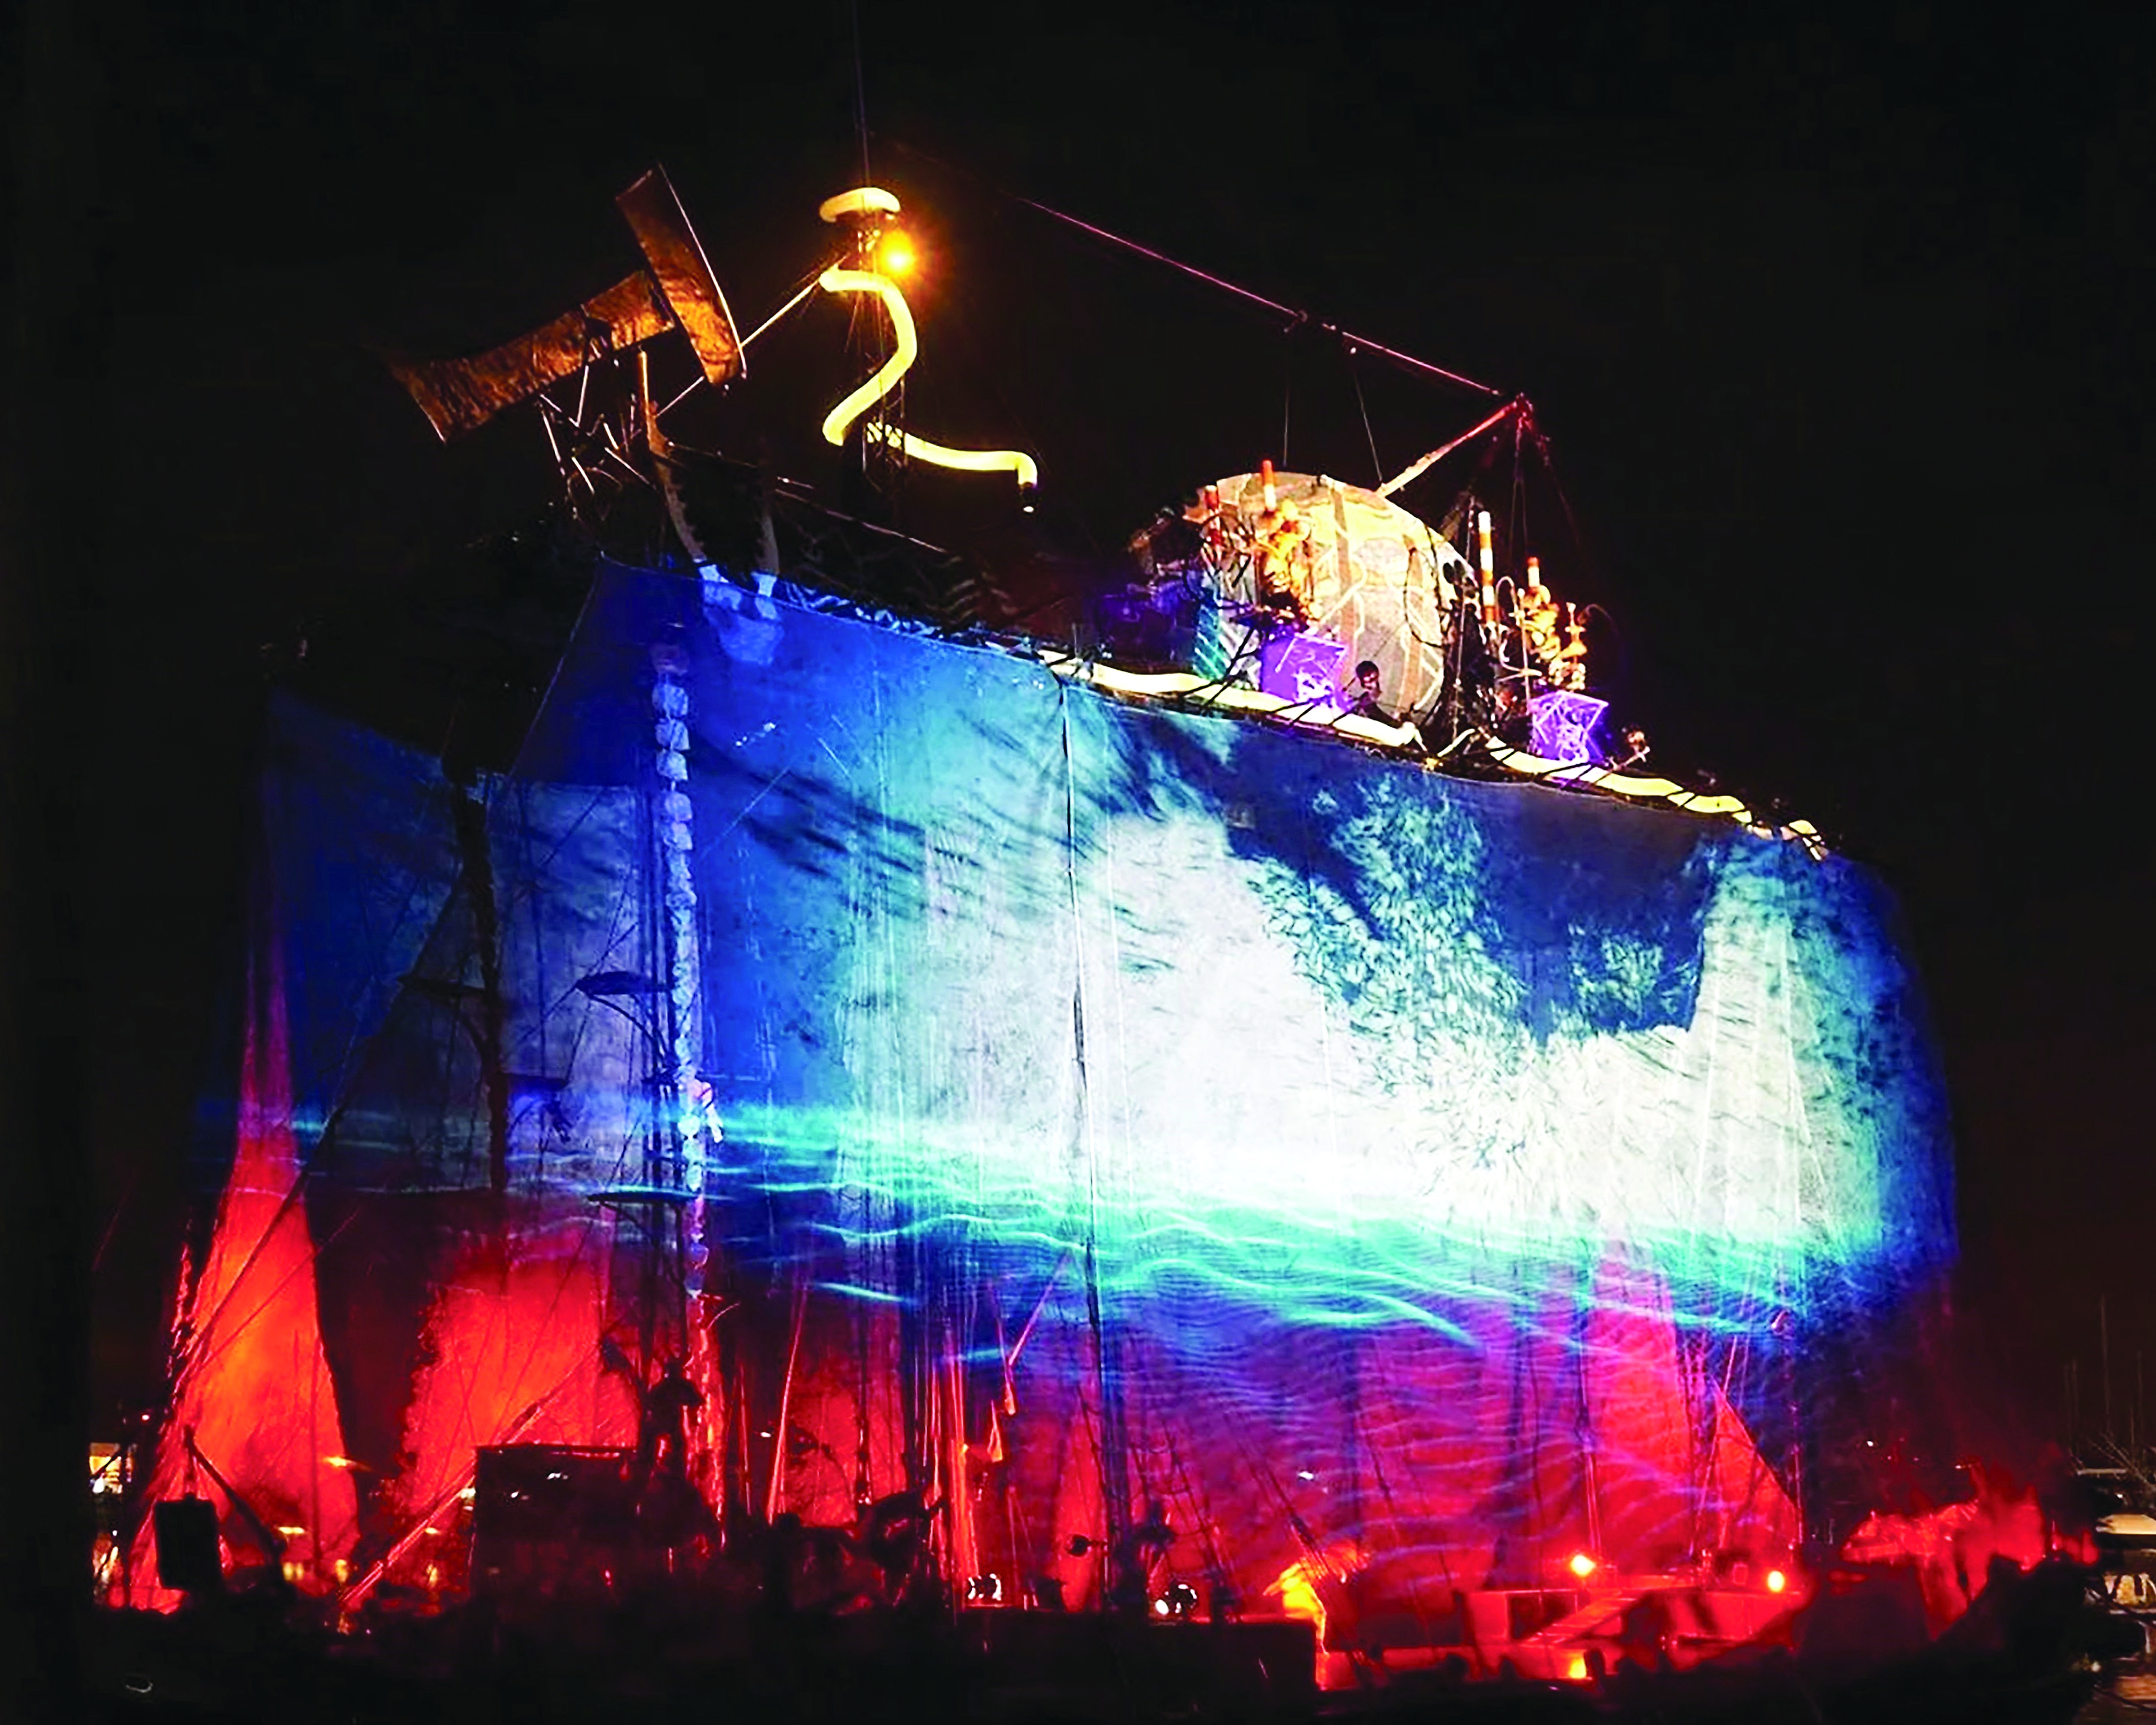 An elaborate set, featuring vibrant lighting design that features intense reds and blues.